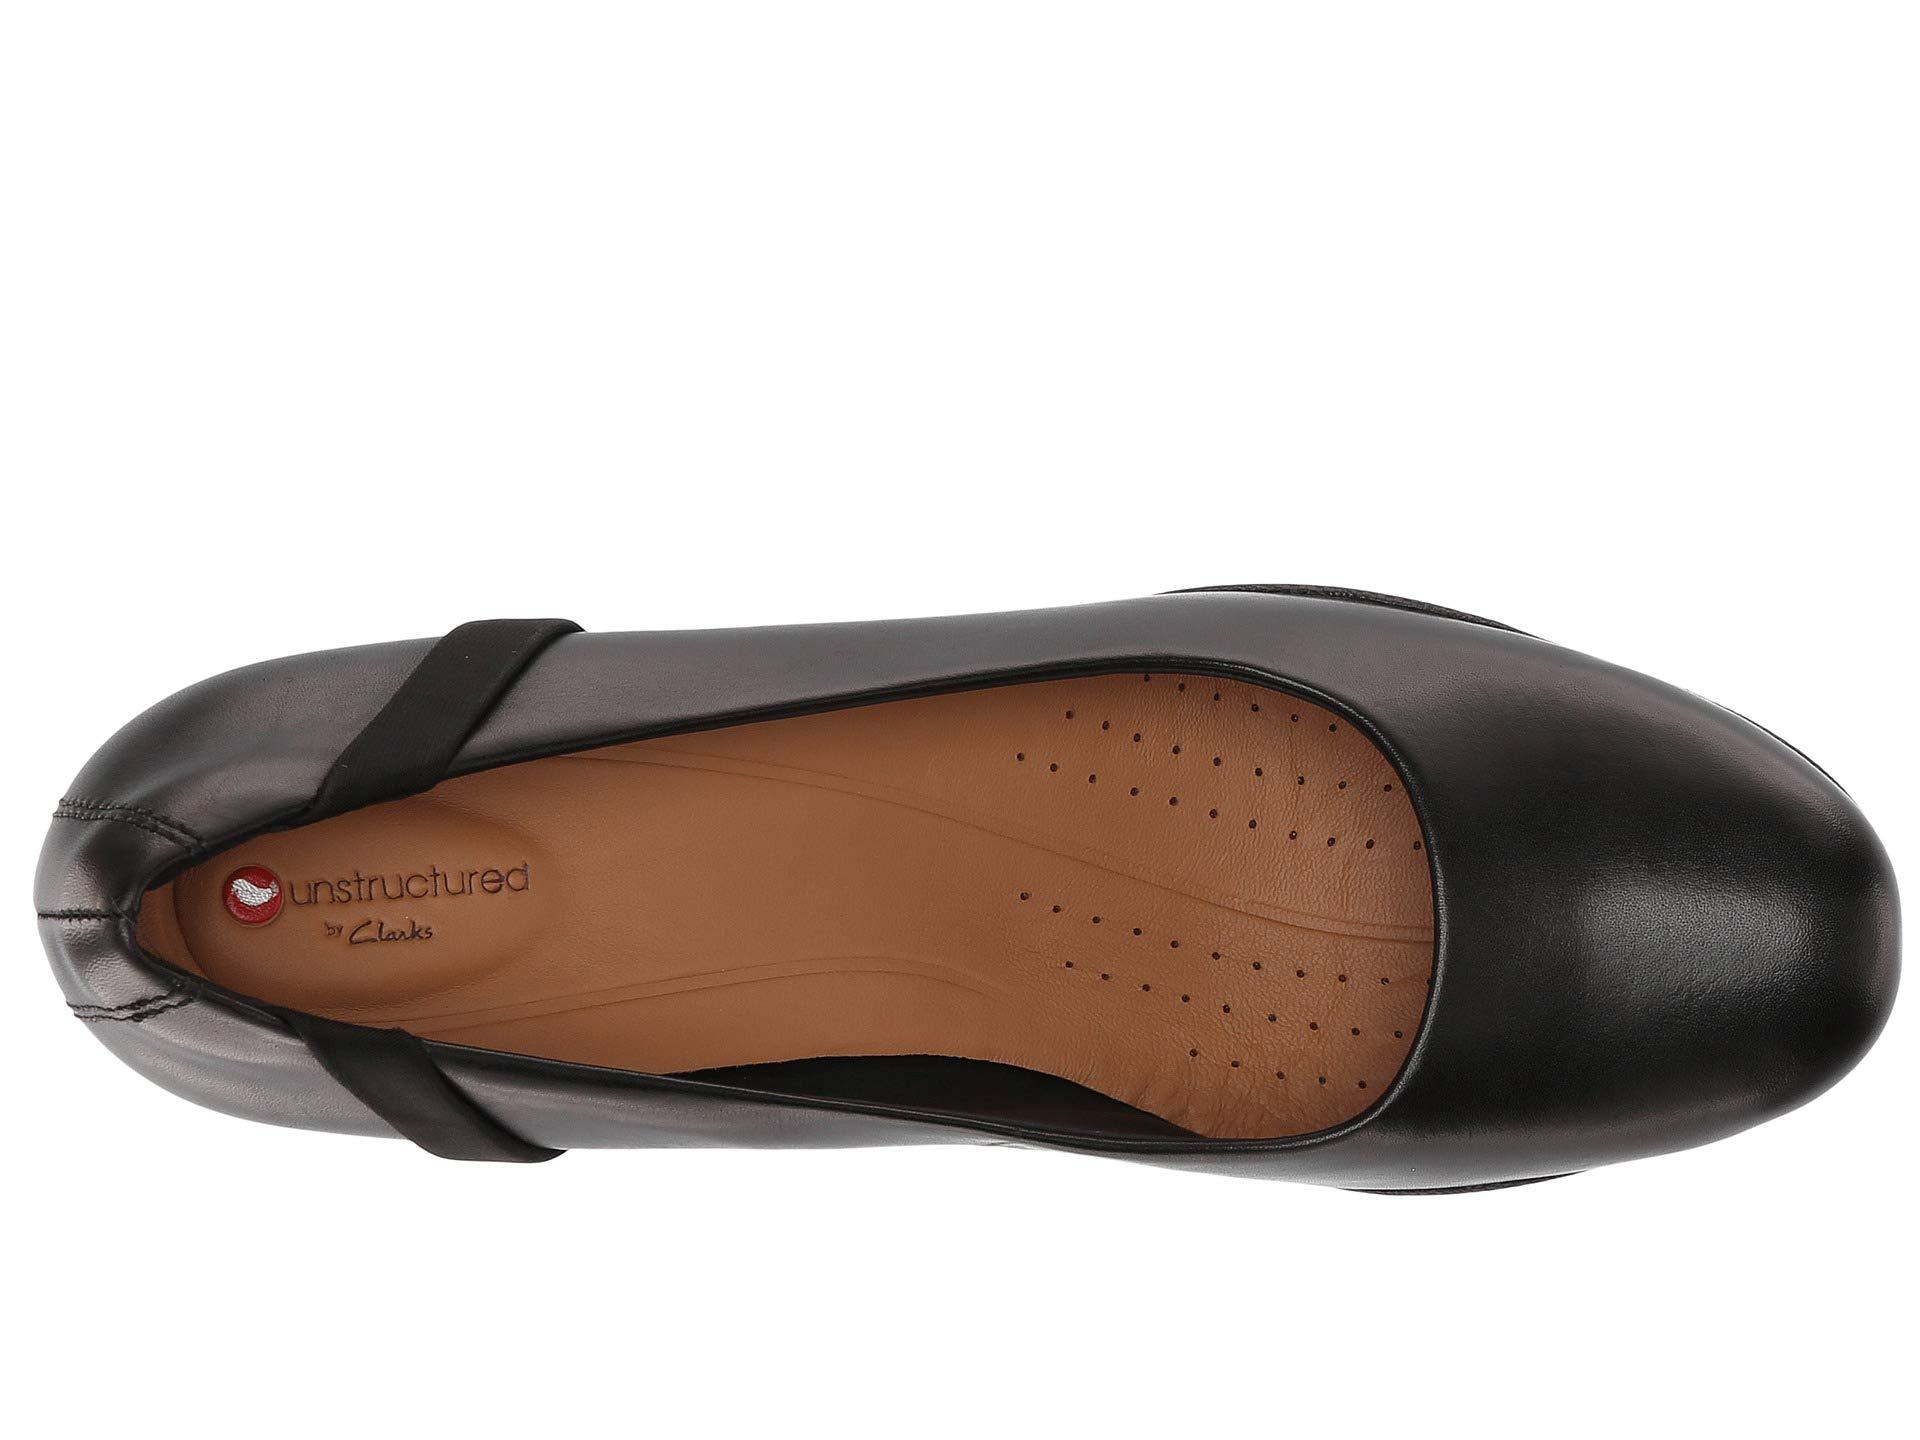 5027804ee1ad8 Clarks Un Rosa Step (black Leather) Women's Shoes in Black - Lyst